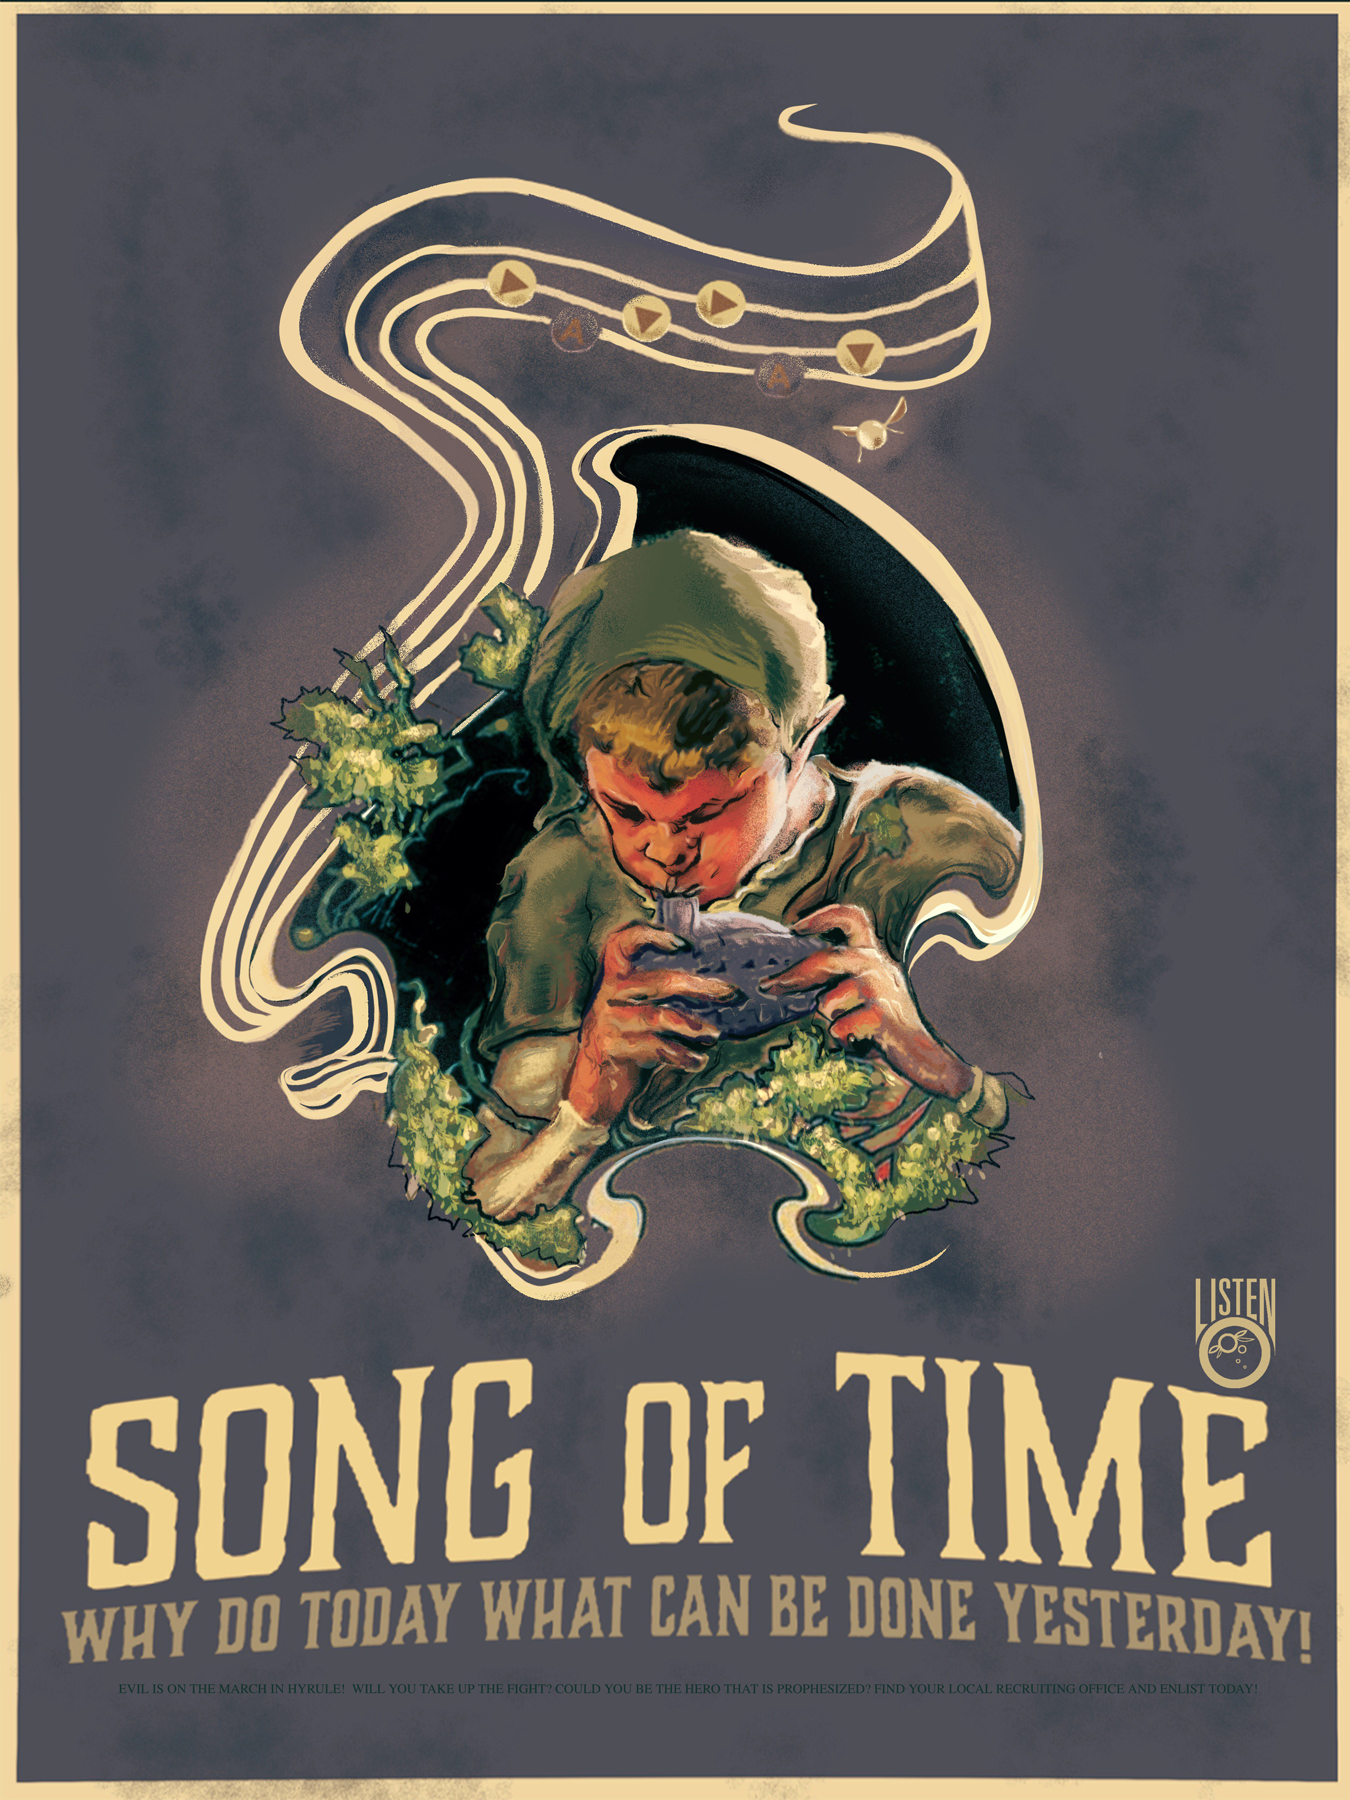 zelda-song-of-time.jpg